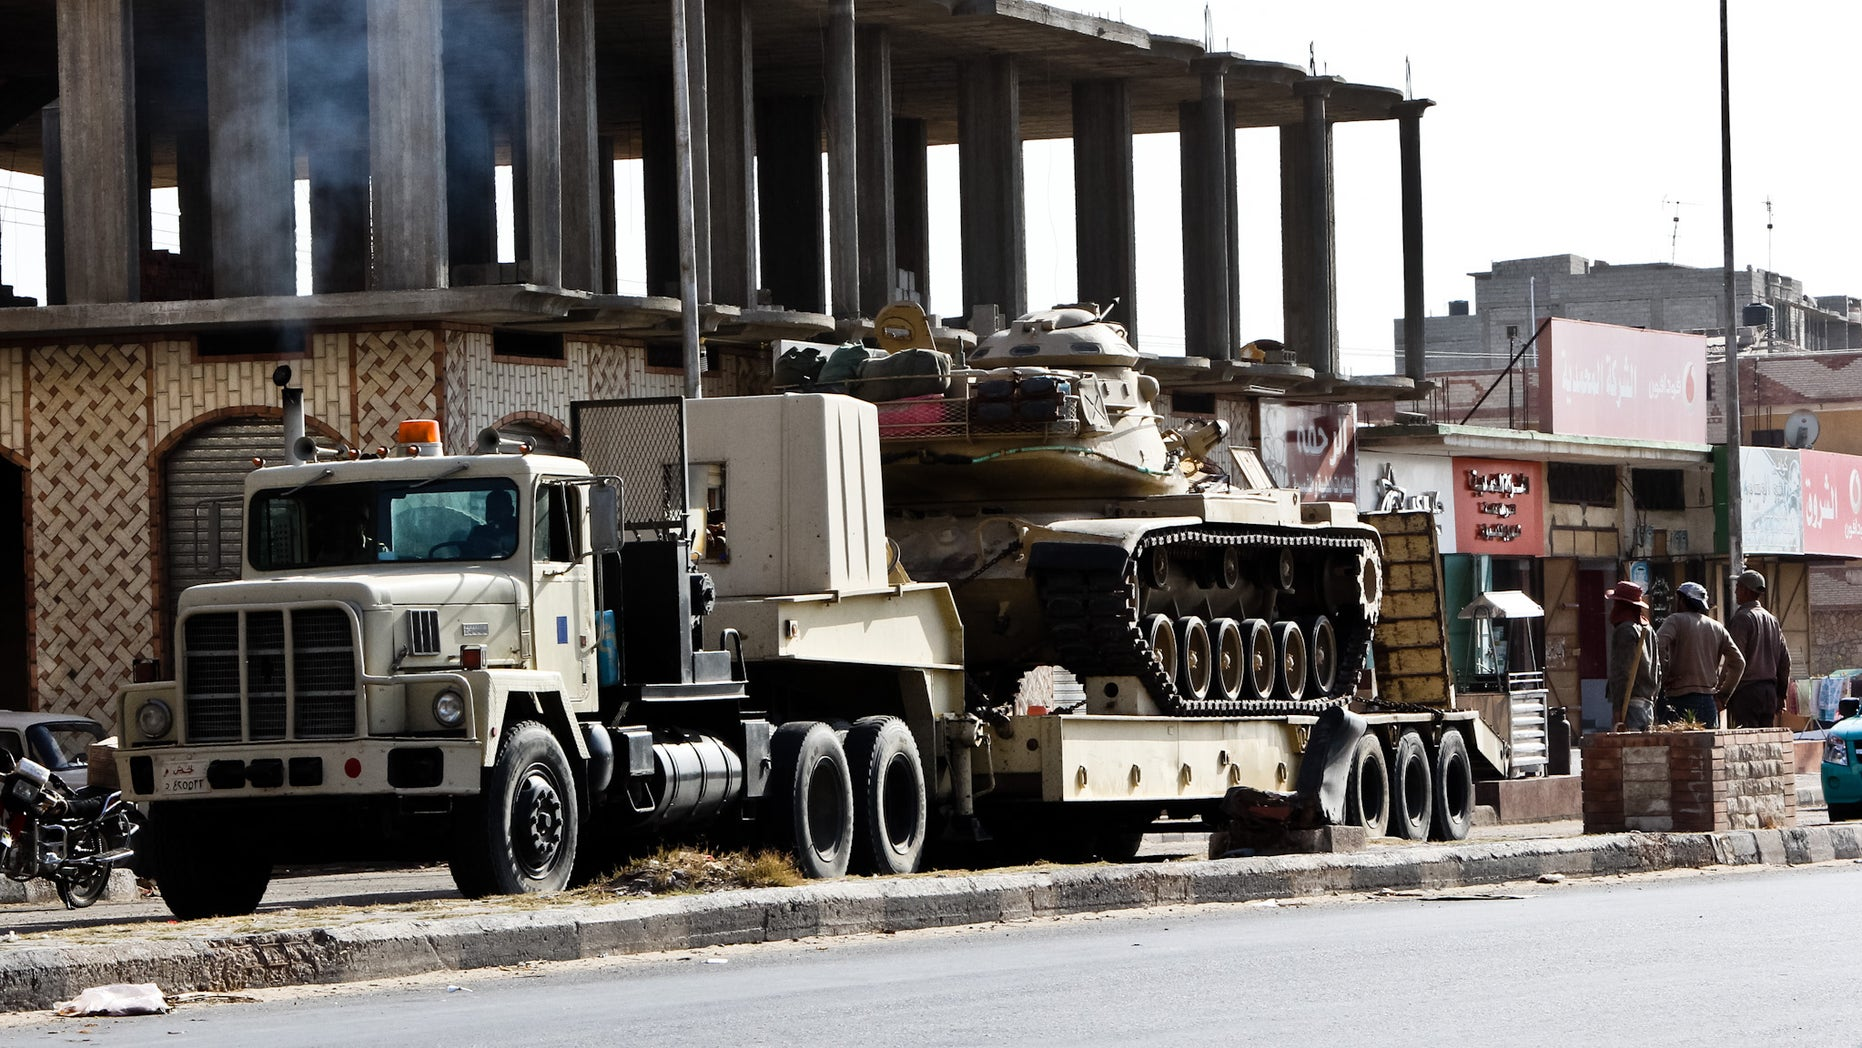 An Egyptian Army vehicle with a tank heads to the closed Rafah border crossing between Egypt and the Gaza strip, in Sheikh Zuweyid, northern Sinai, Egypt, Monday, May 20, 2013. Security officials said 17 military and more than 20 police armored vehicles were deployed in northern Sinai Monday as a response to the kidnapping by suspected militants of six policemen and a border guard there last Thursday. It was not clear if they deployed to rescue the hostages, to make a show of force to intimidate their captors, or for another reason. (AP Photo/Roger Anis, El Shorouk Newspaper) EGYPT OUT